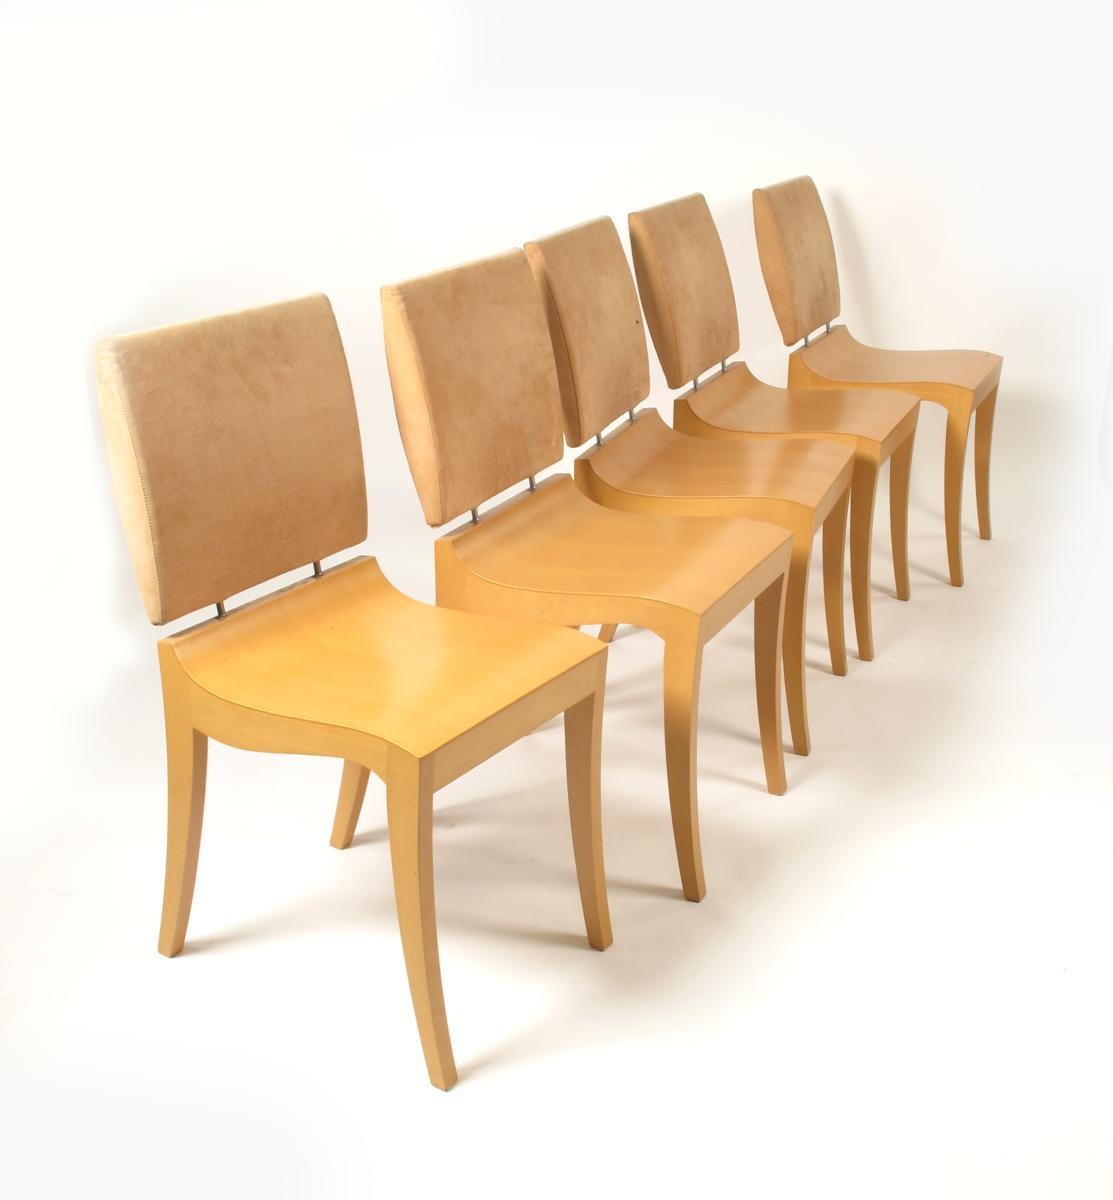 A Set Of Six Ligne Roset Finn Dining Chairs, Designed By Thibault Desombre,  Veneer With Leather Padded Backs, Original Label 88cm. High